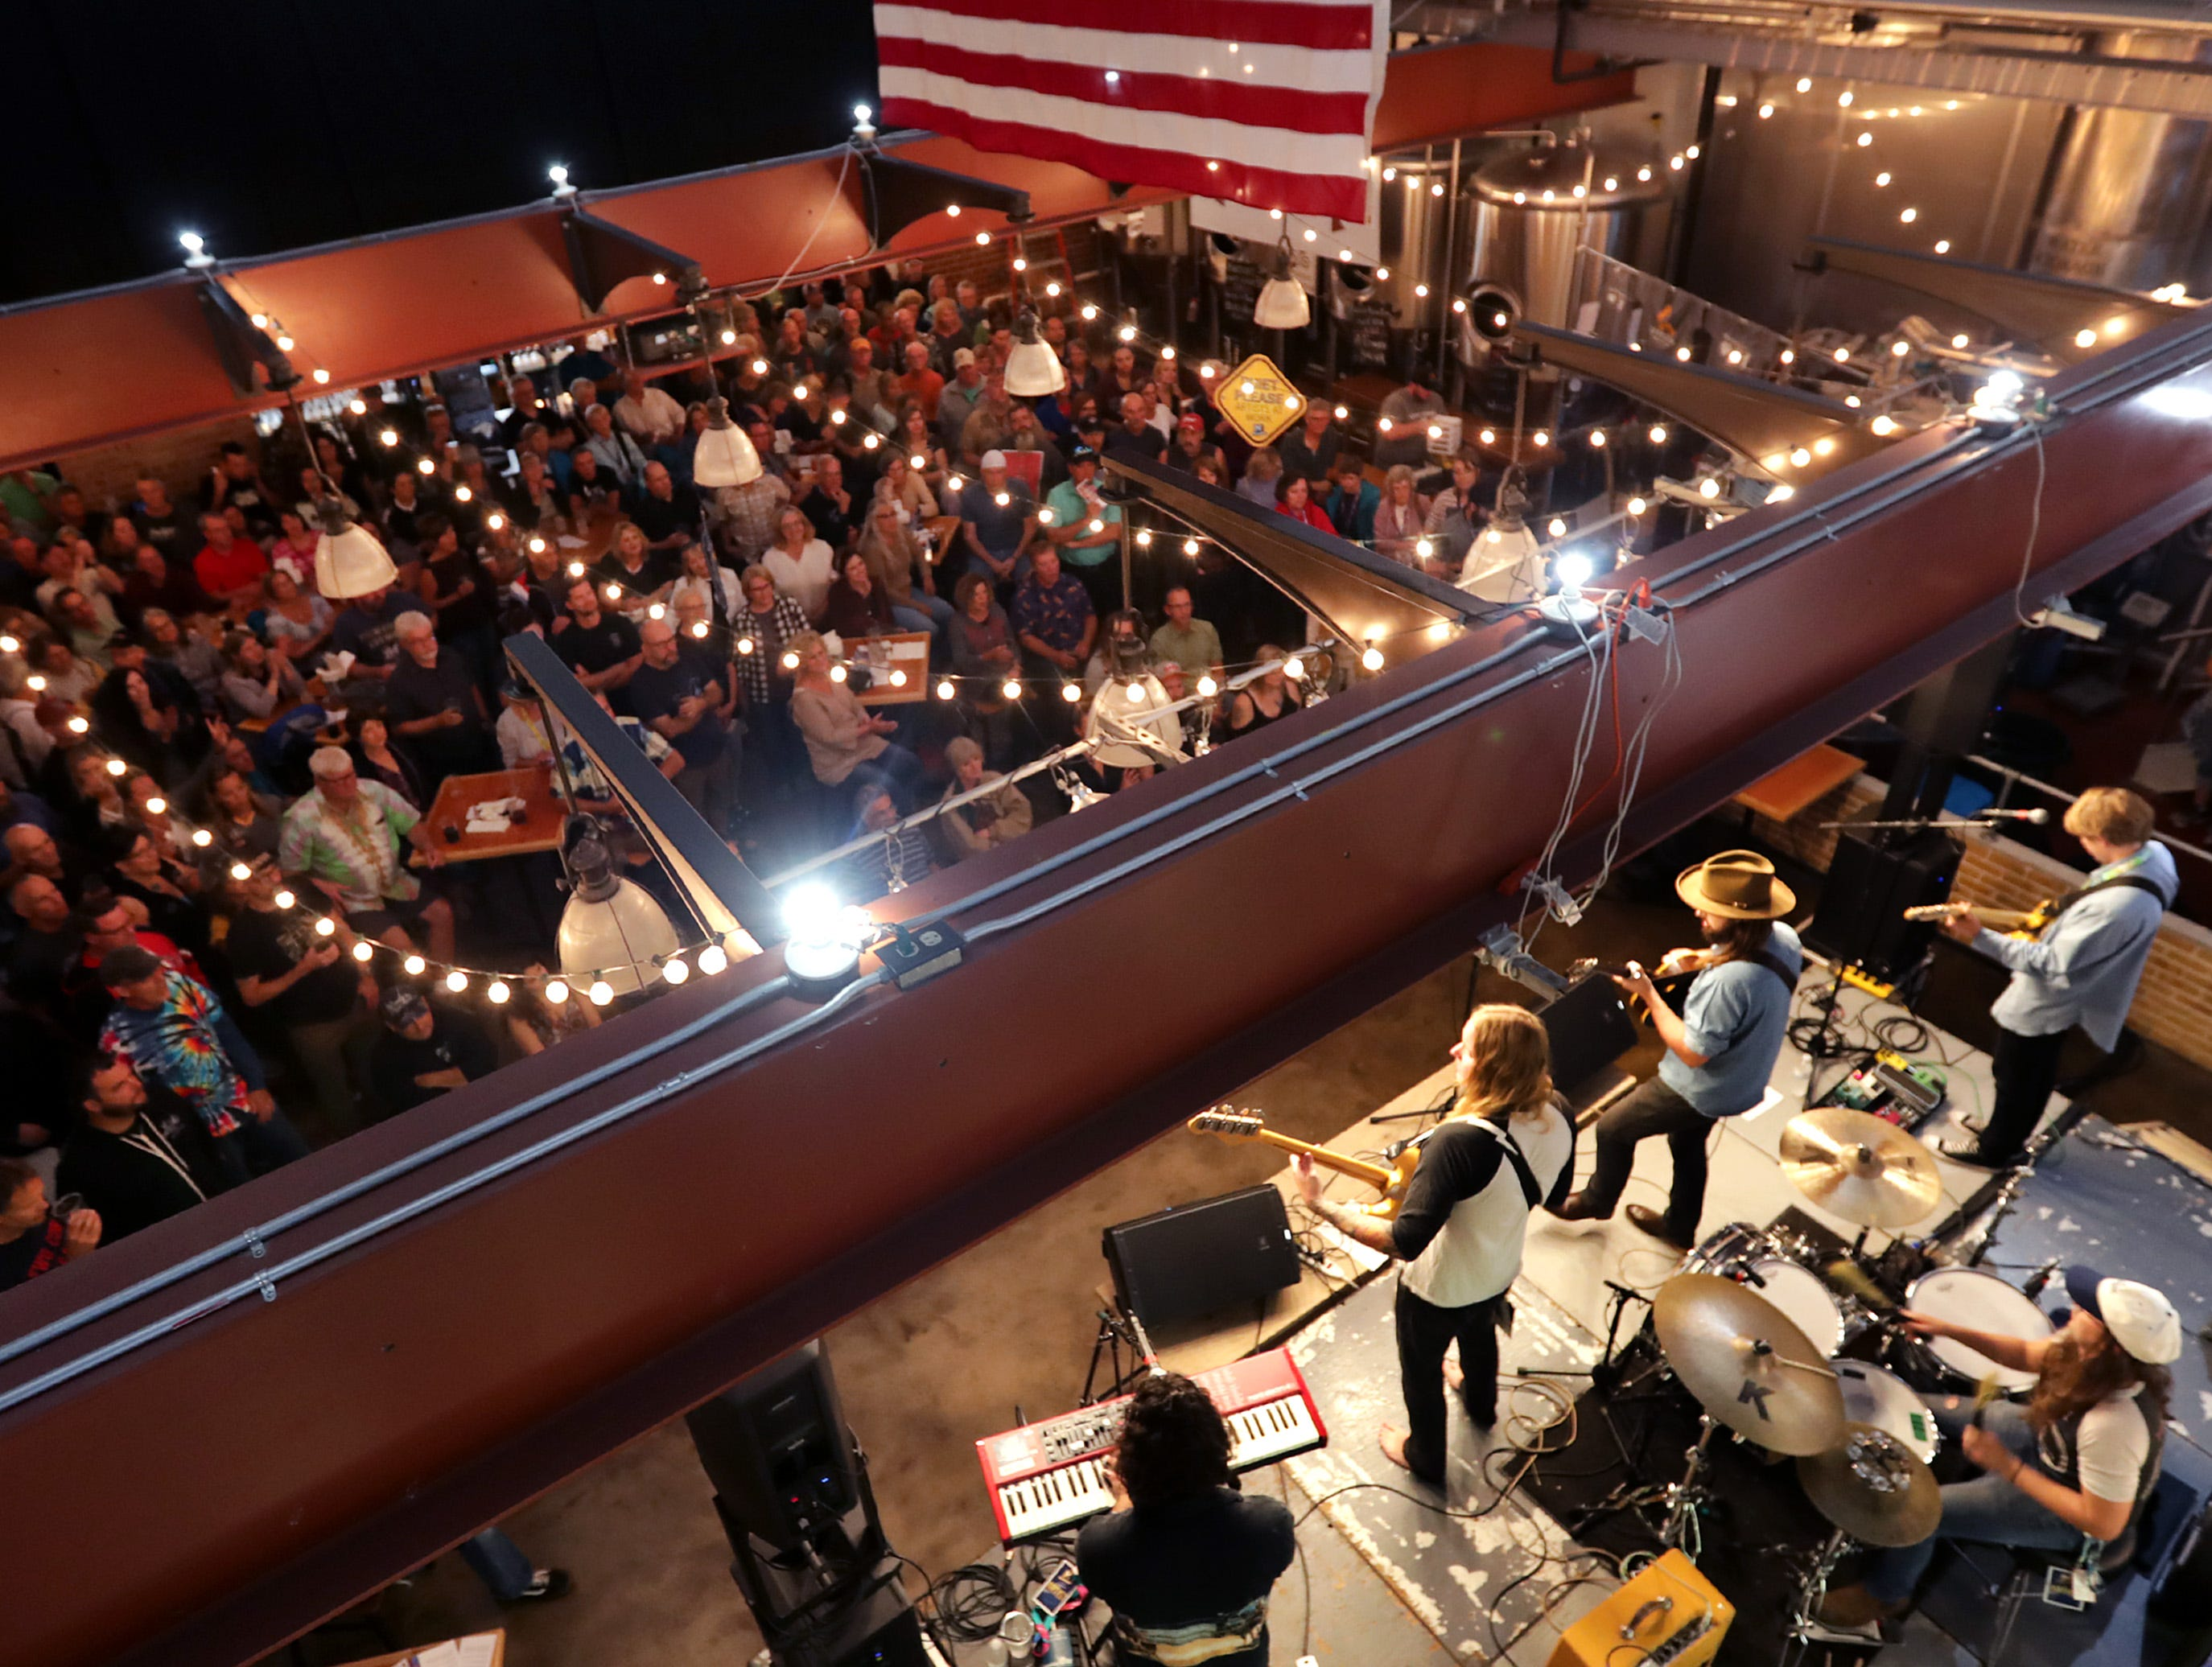 Caleb Caudle, performs in front of a packed house at the Appleton Beer Factory during the Mile of Music festival Thursday, August 2, 2018, in Appleton, Wis. 